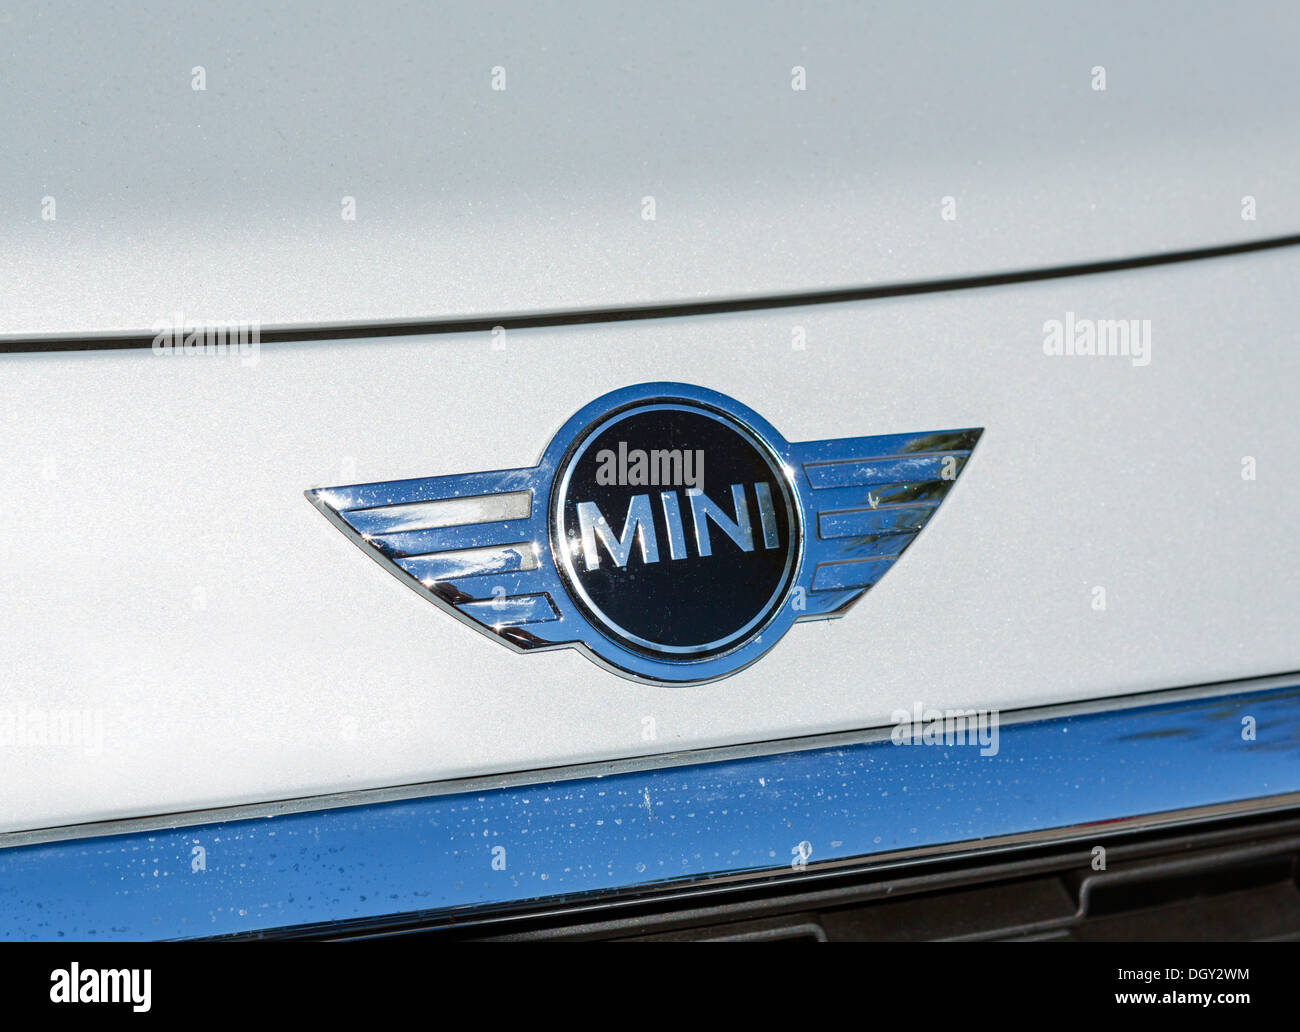 Badge on the front of a Mini Cooper car, USA - Stock Image